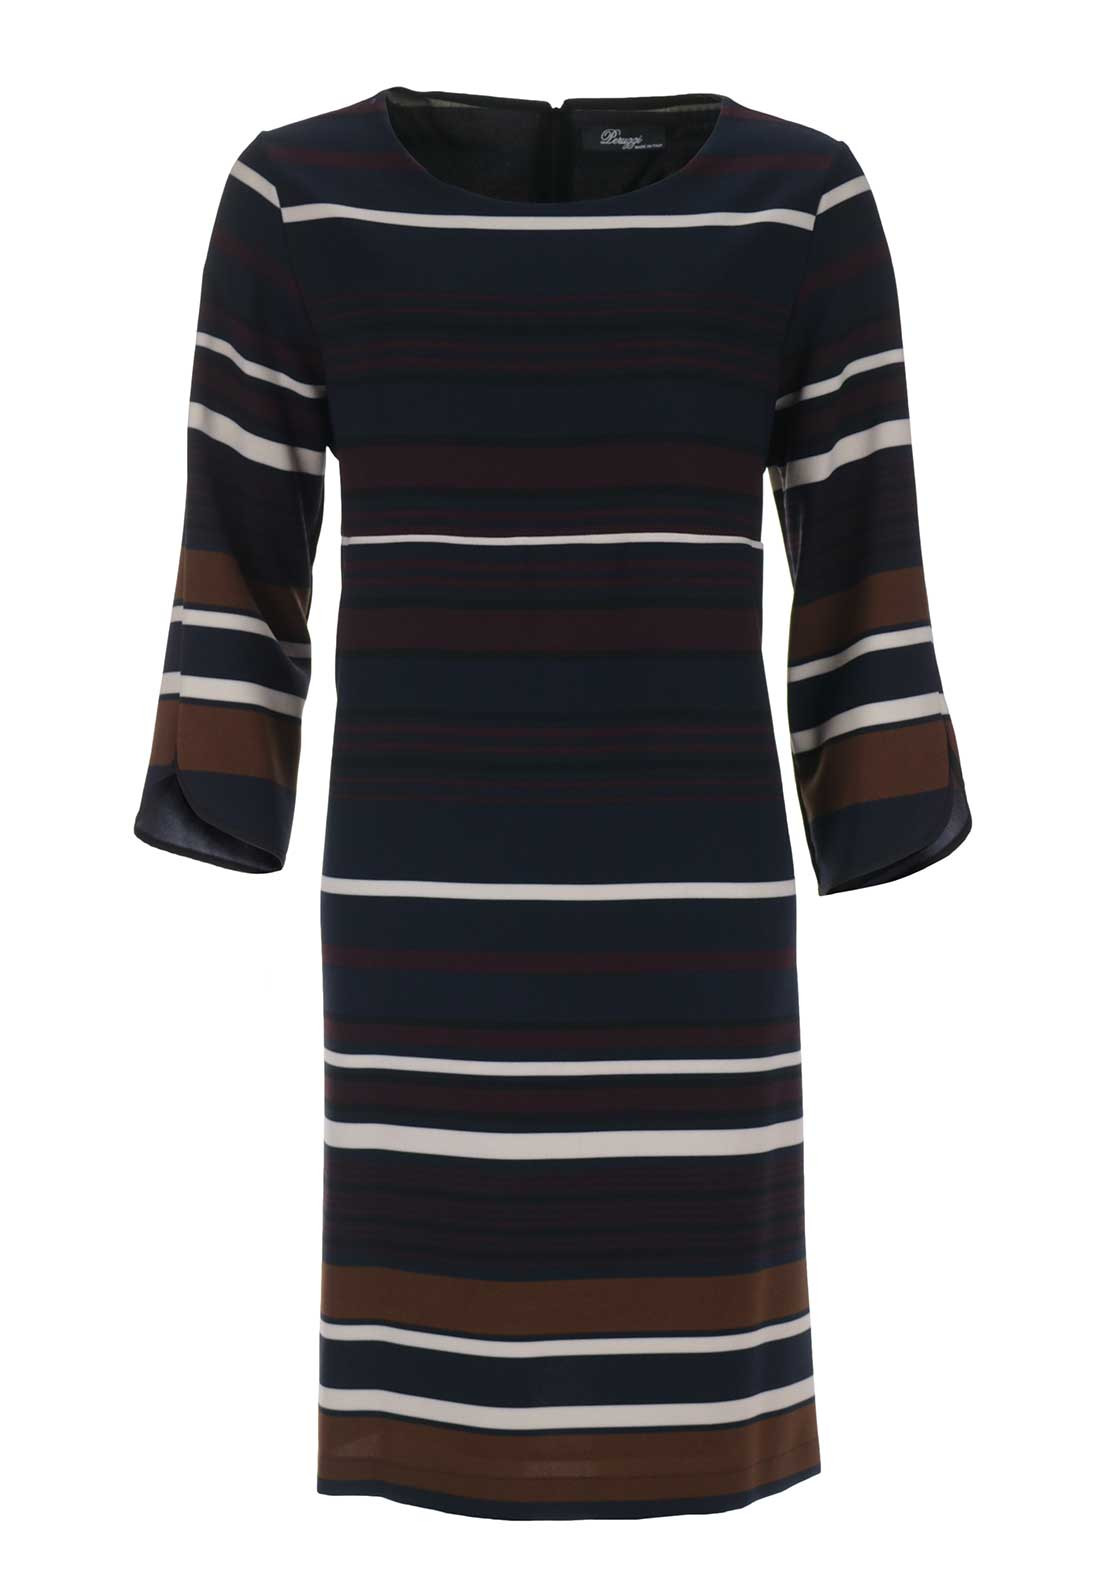 Peruzzi Striped Tunic Dress, Multi-Coloured